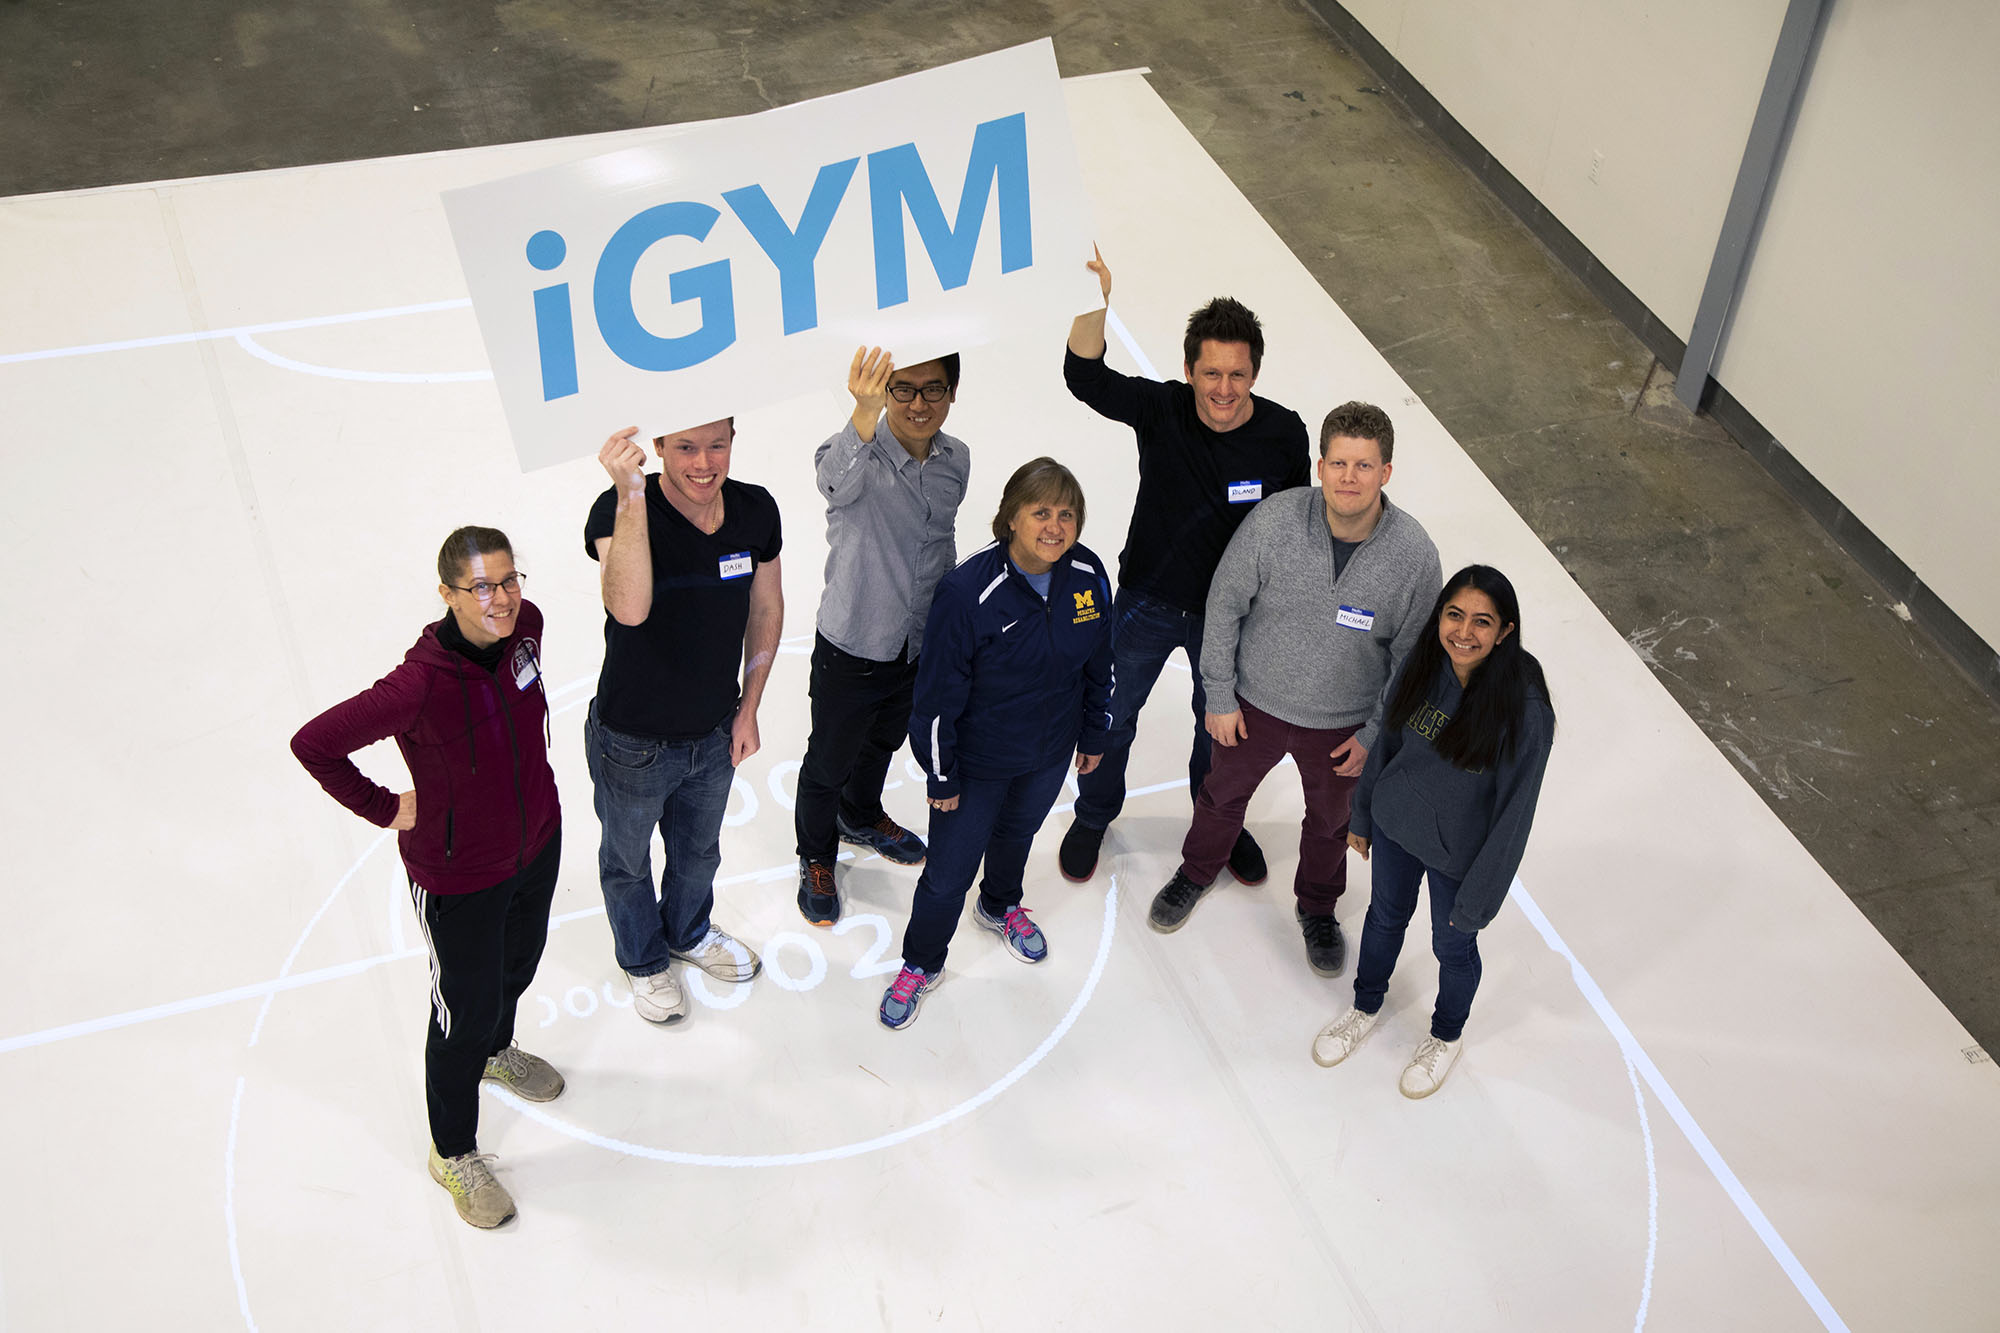 iGym team (left to right): Amy E. Whitesall, research assistant Dashiell Carichner, research assistant Hun Seok Kim, assistant professor, U-M College of Engineering  Betsy Howell, M.S., P.T, consultant  Roland Graf, associate professor, U-M Stamps School of Art & Design Michael Nebeling, assistant professor, U-M School of Information Pallavi Benawri, research assistant